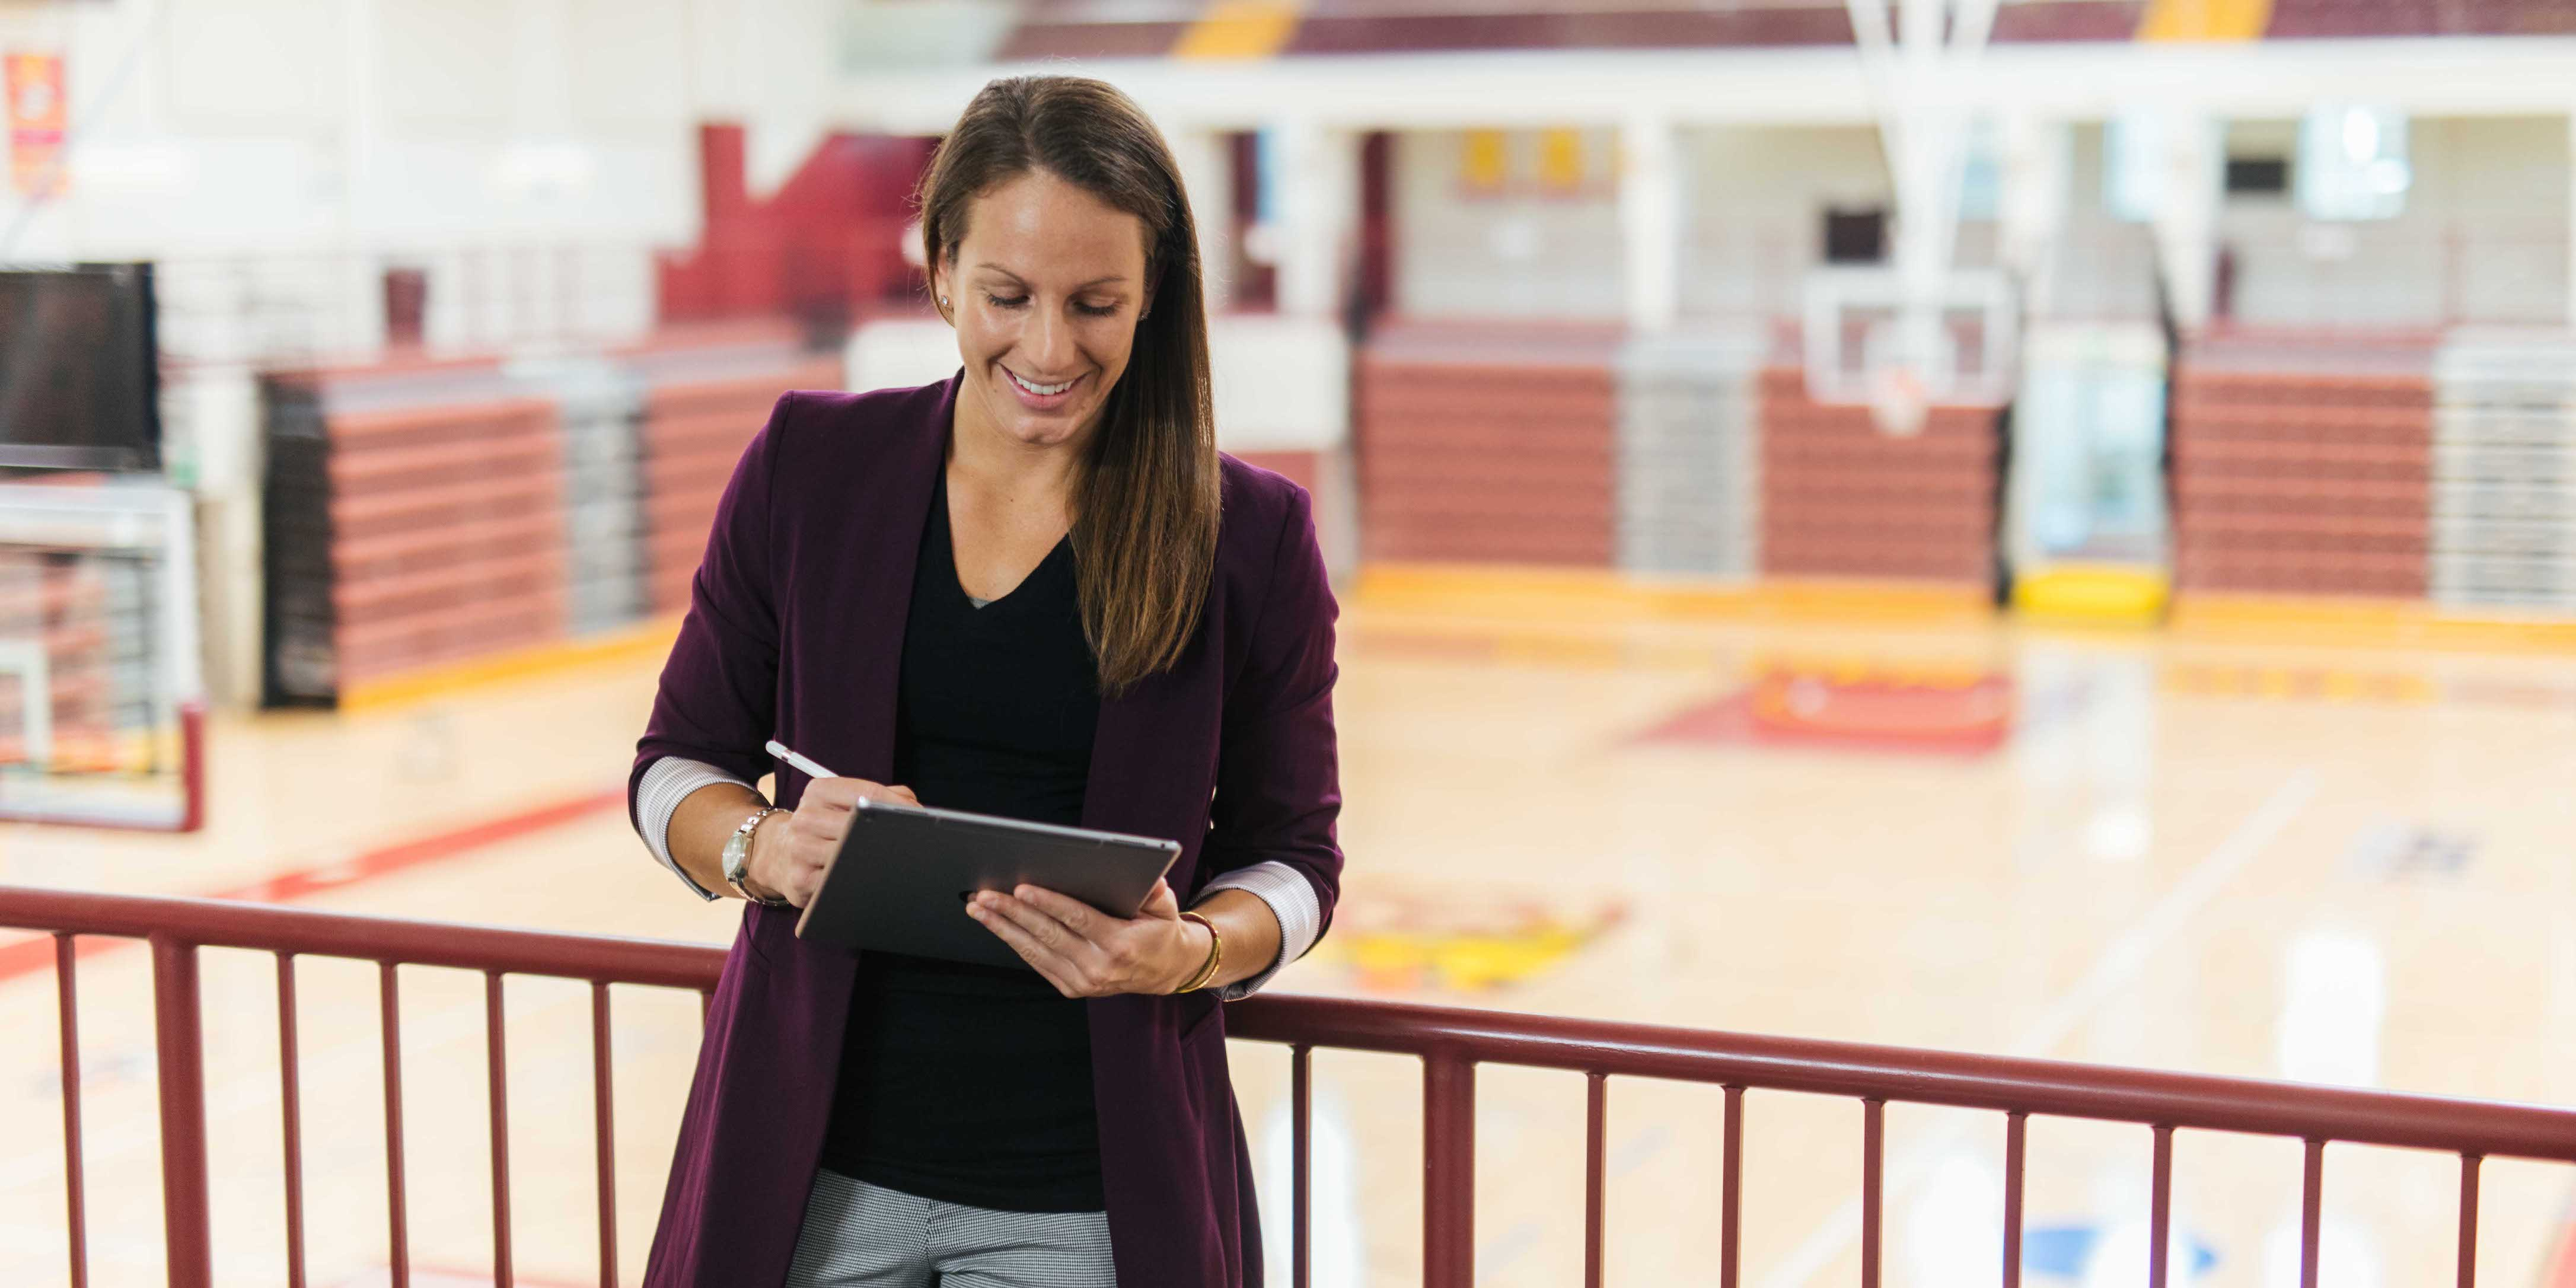 female with tablet in basketball arena